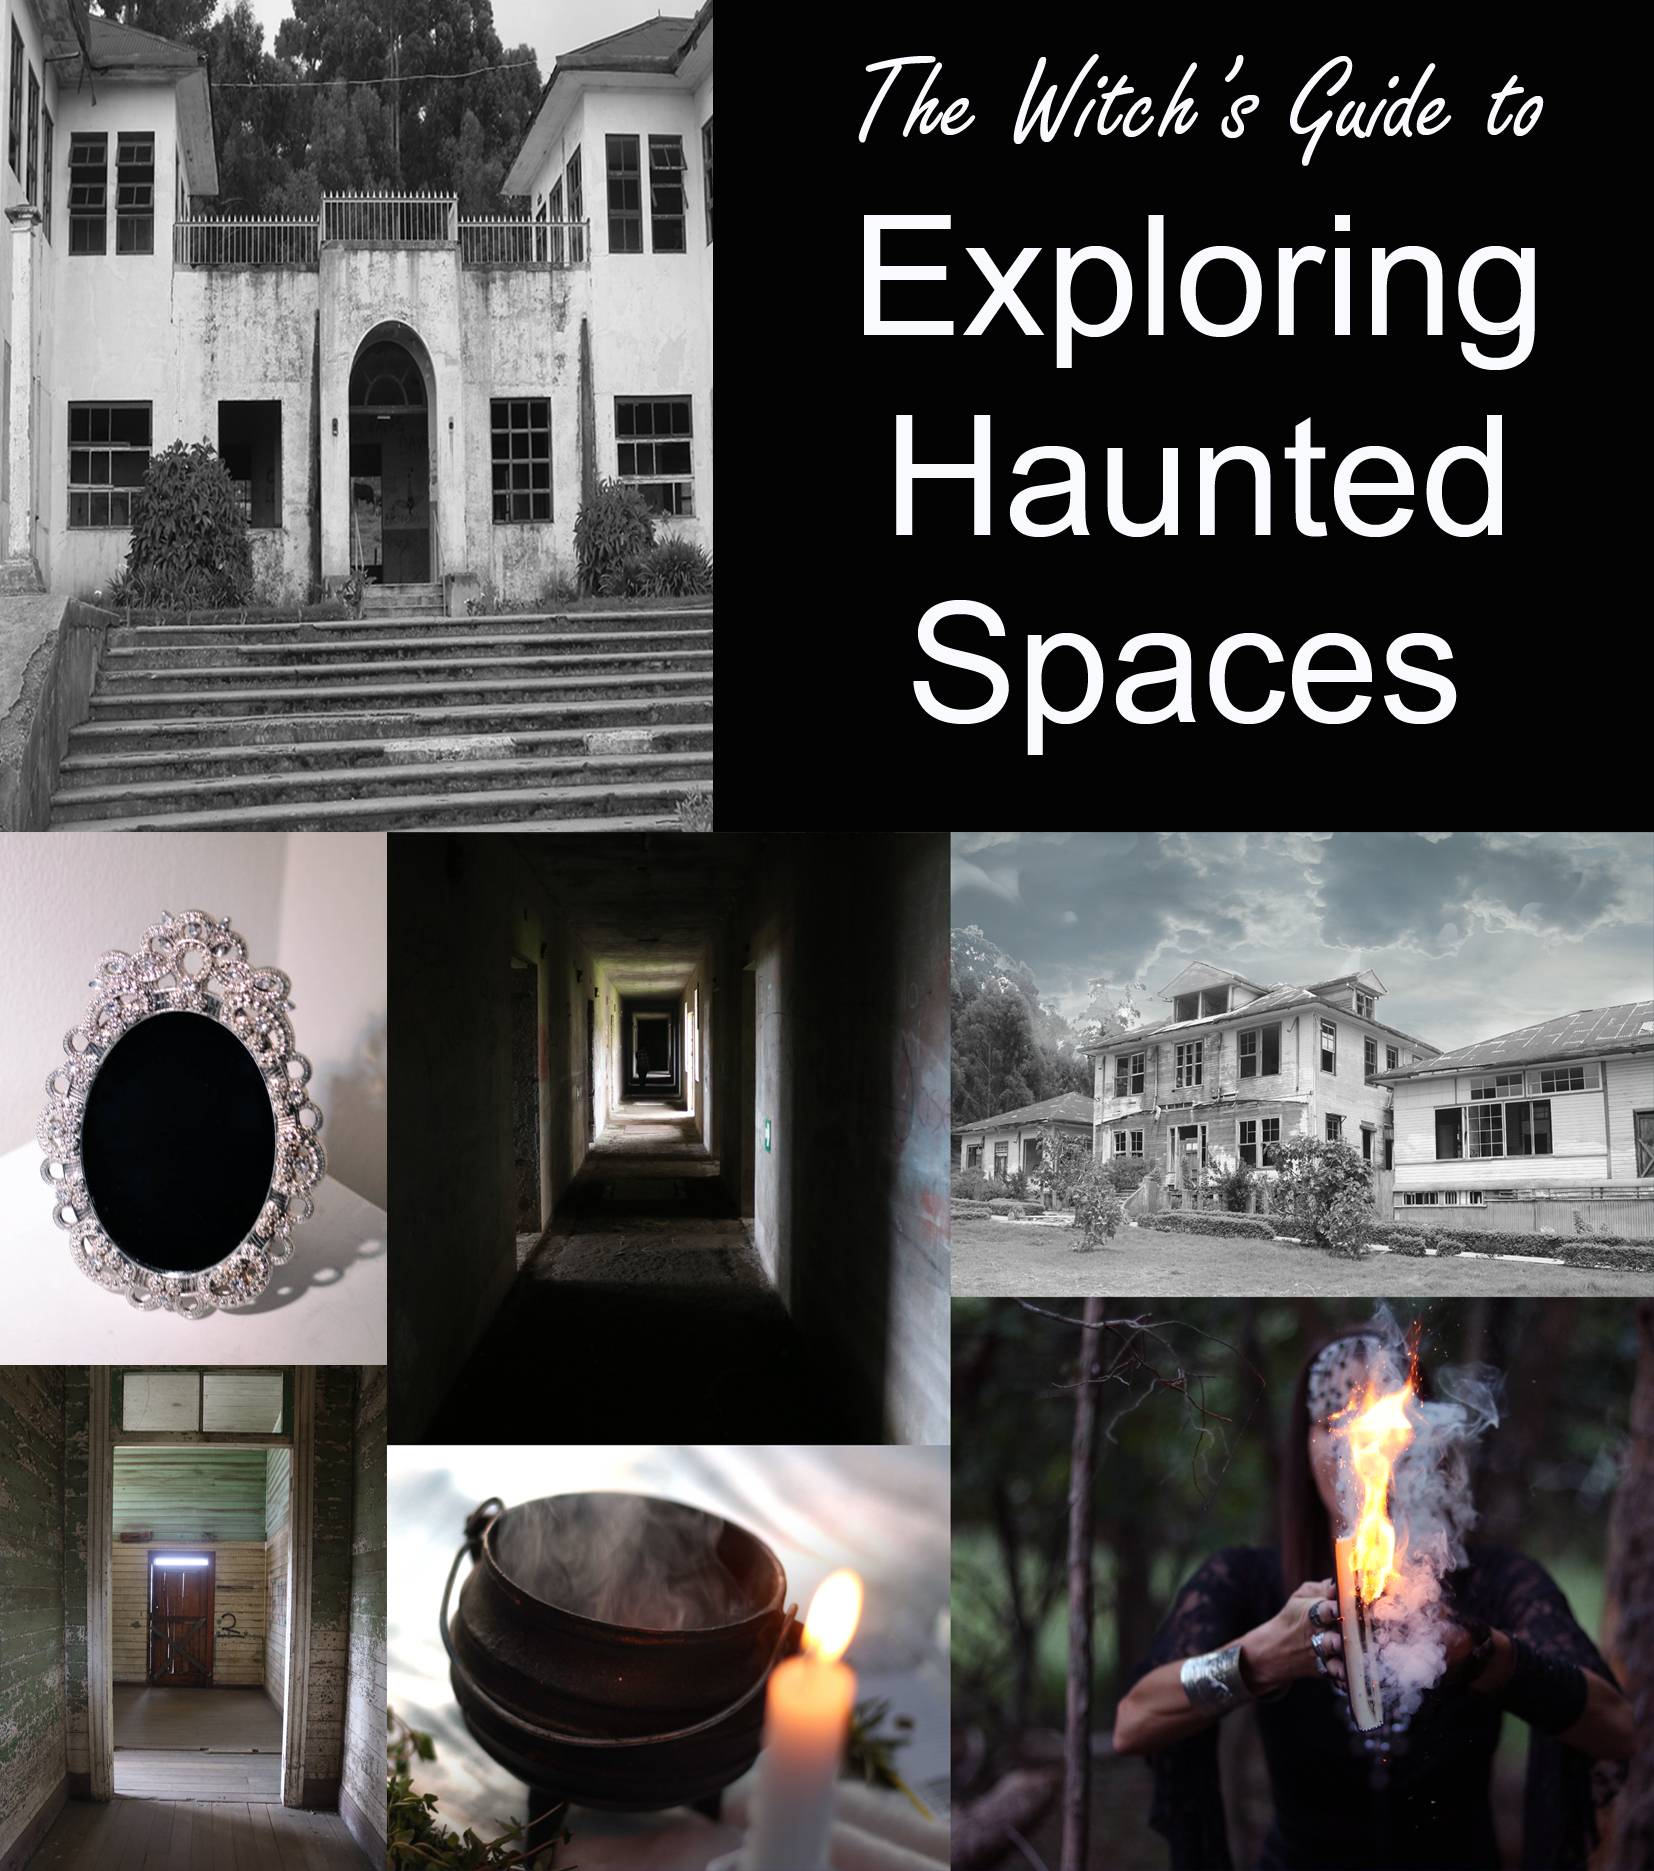 the witch's guide to exploring haunted spaces